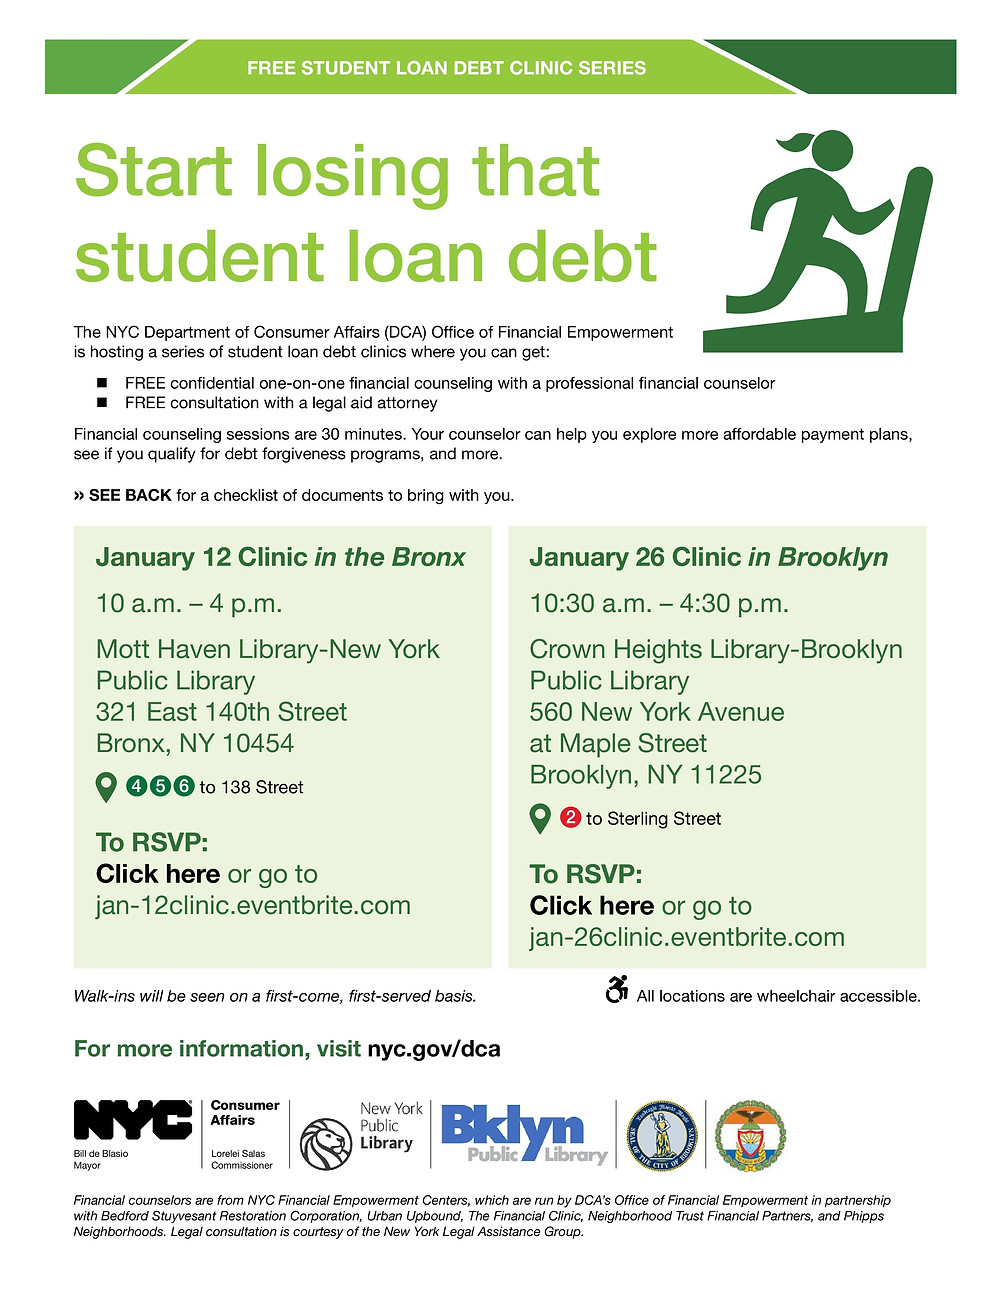 Student Loan Debt Reduction seminar with NYC Department of Consumer Affairs